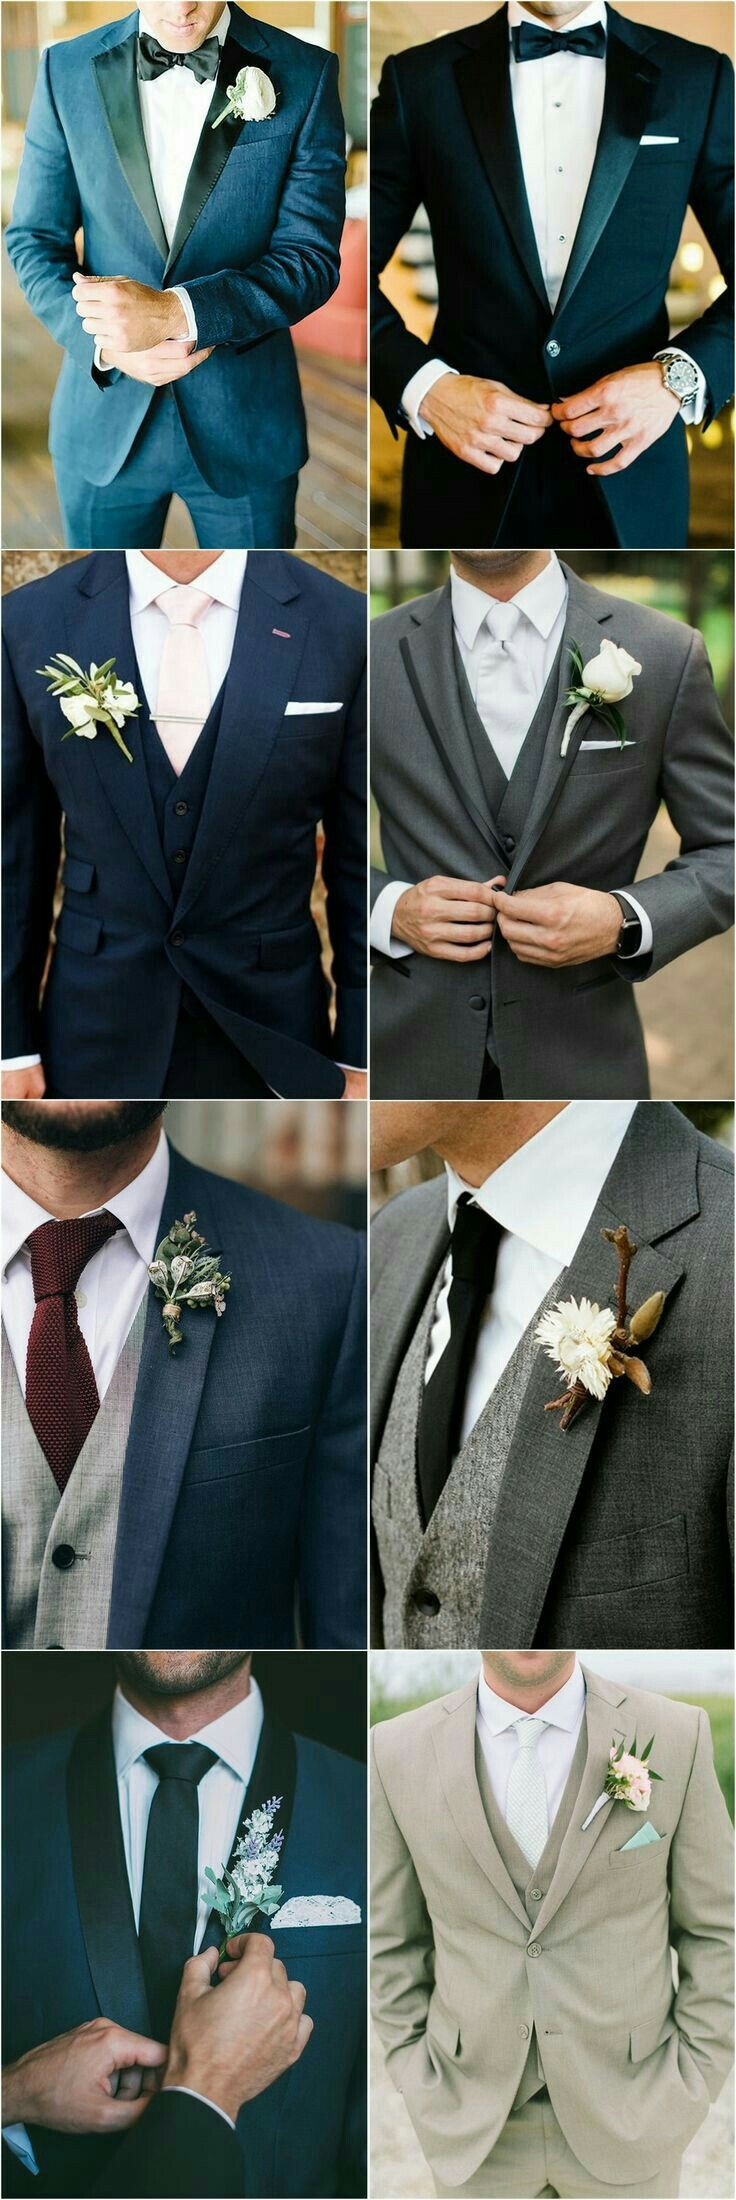 Navy tuxes michaelus wedding mikey u megus wedding in